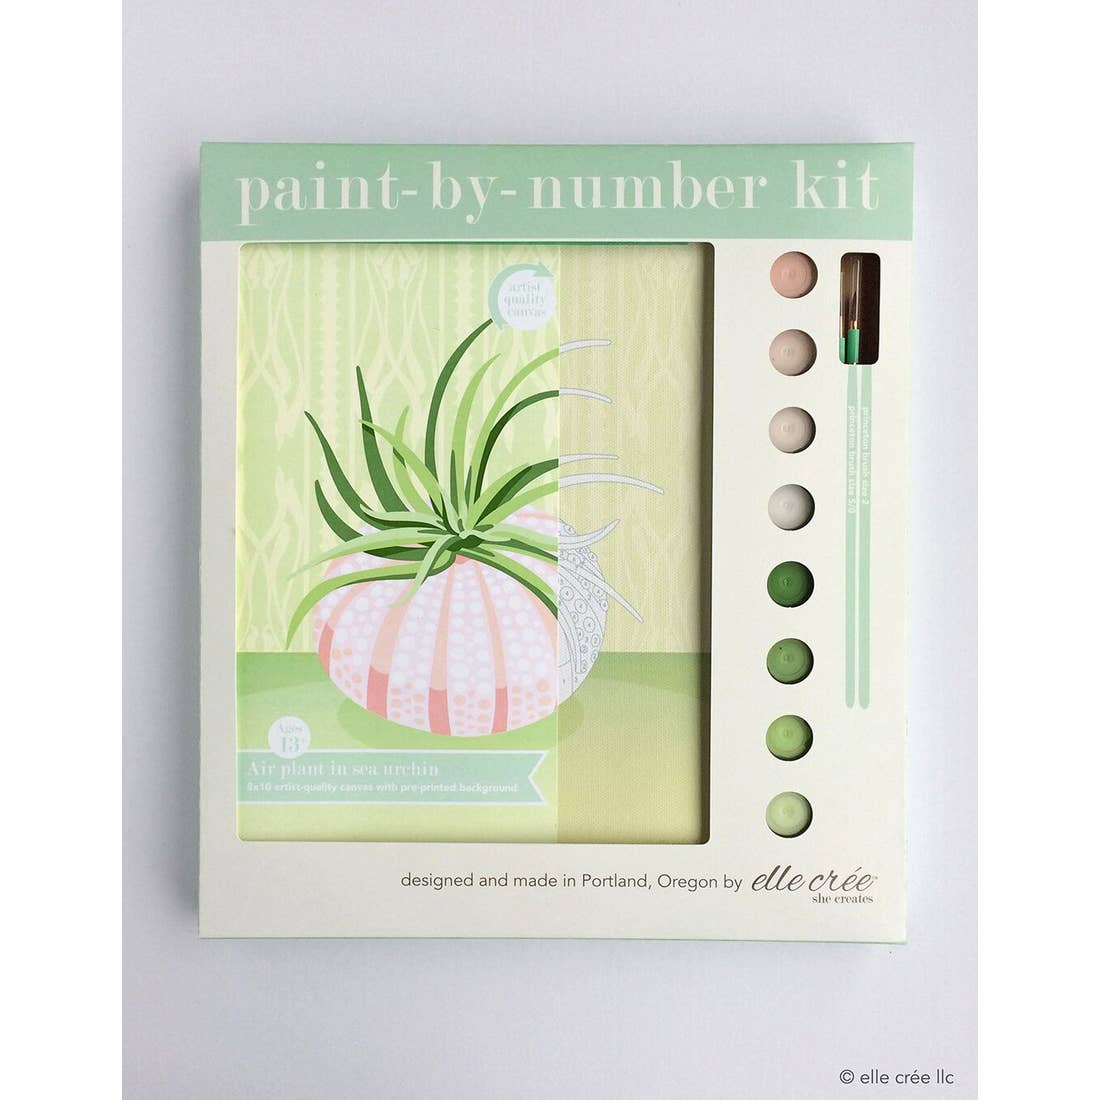 Have Fun with the Air Plant in Sea Urchin Paint-by-Number Kit